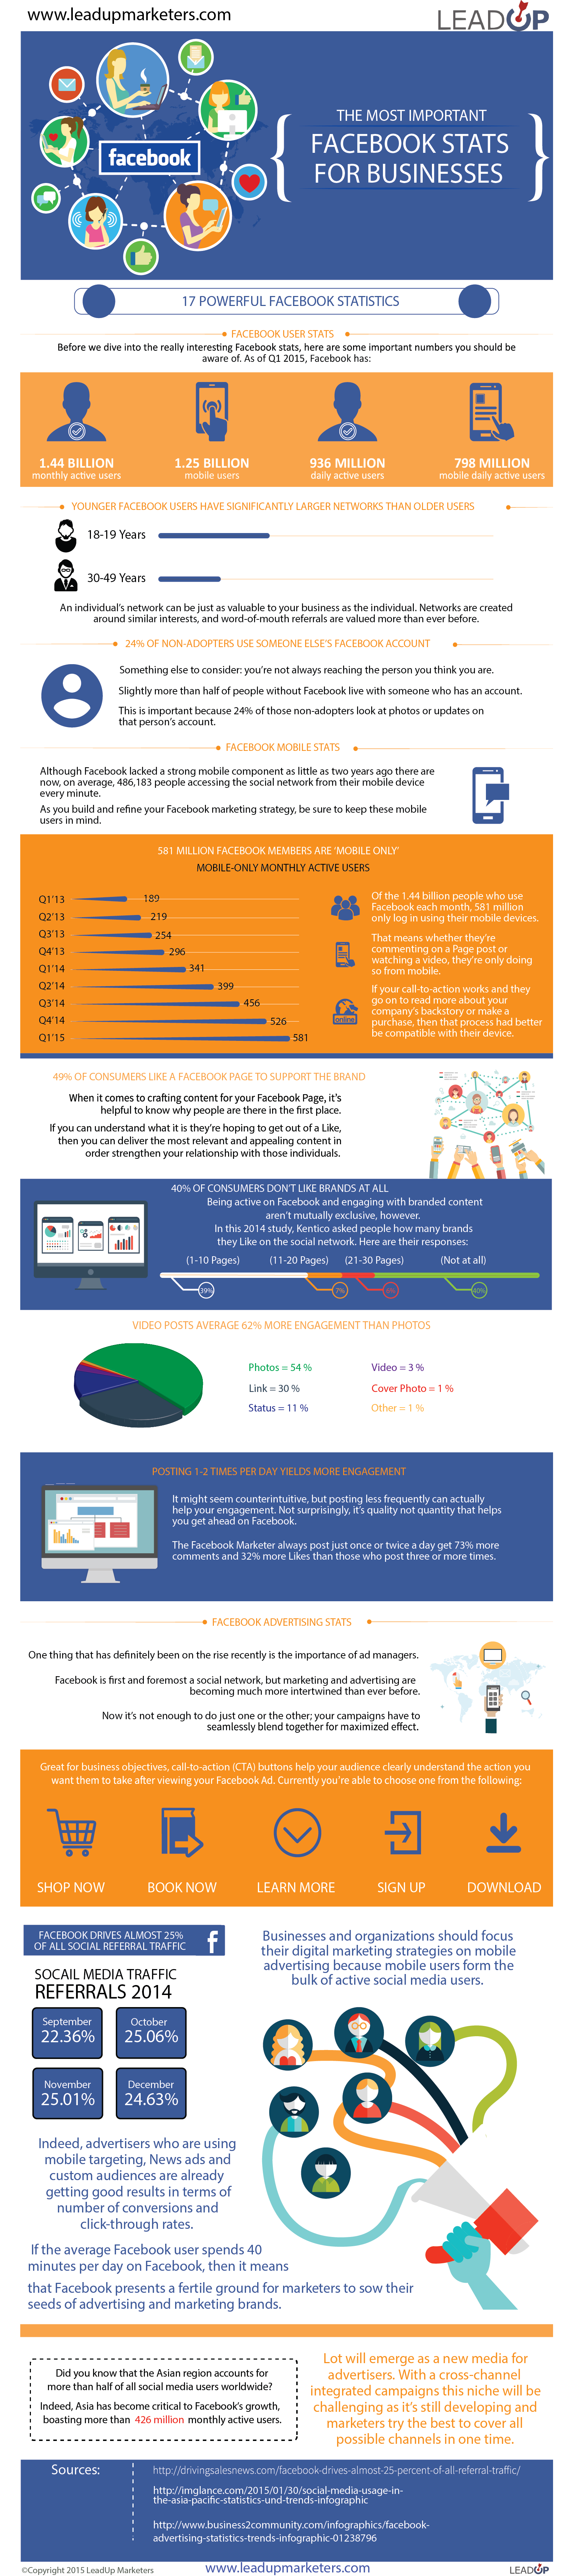 The Most Important Facebook Stats for Business